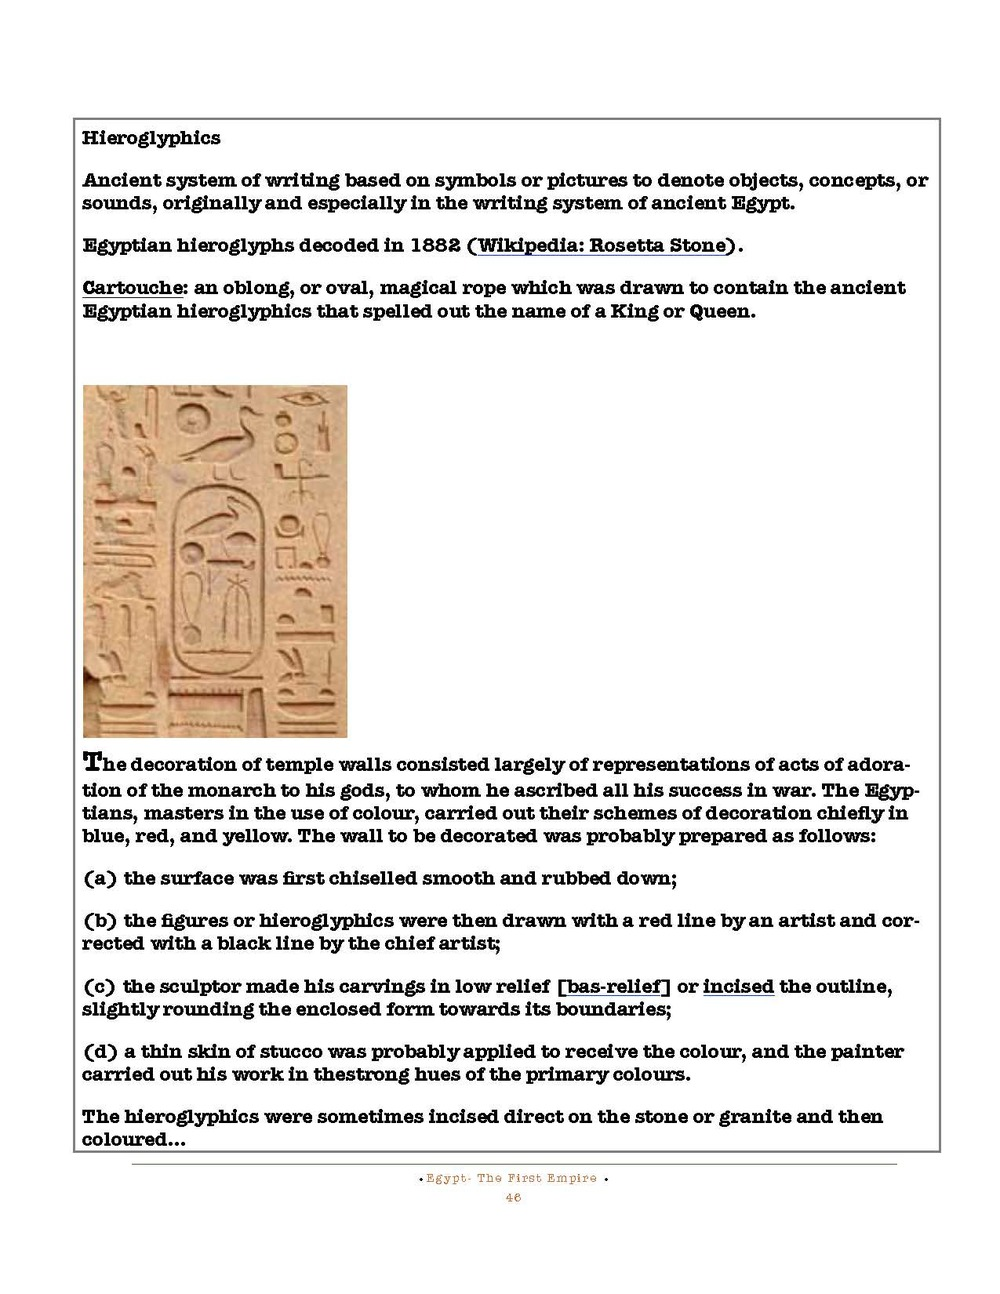 HOCE- Egypt  (First Empire) Notes_Page_046.jpg